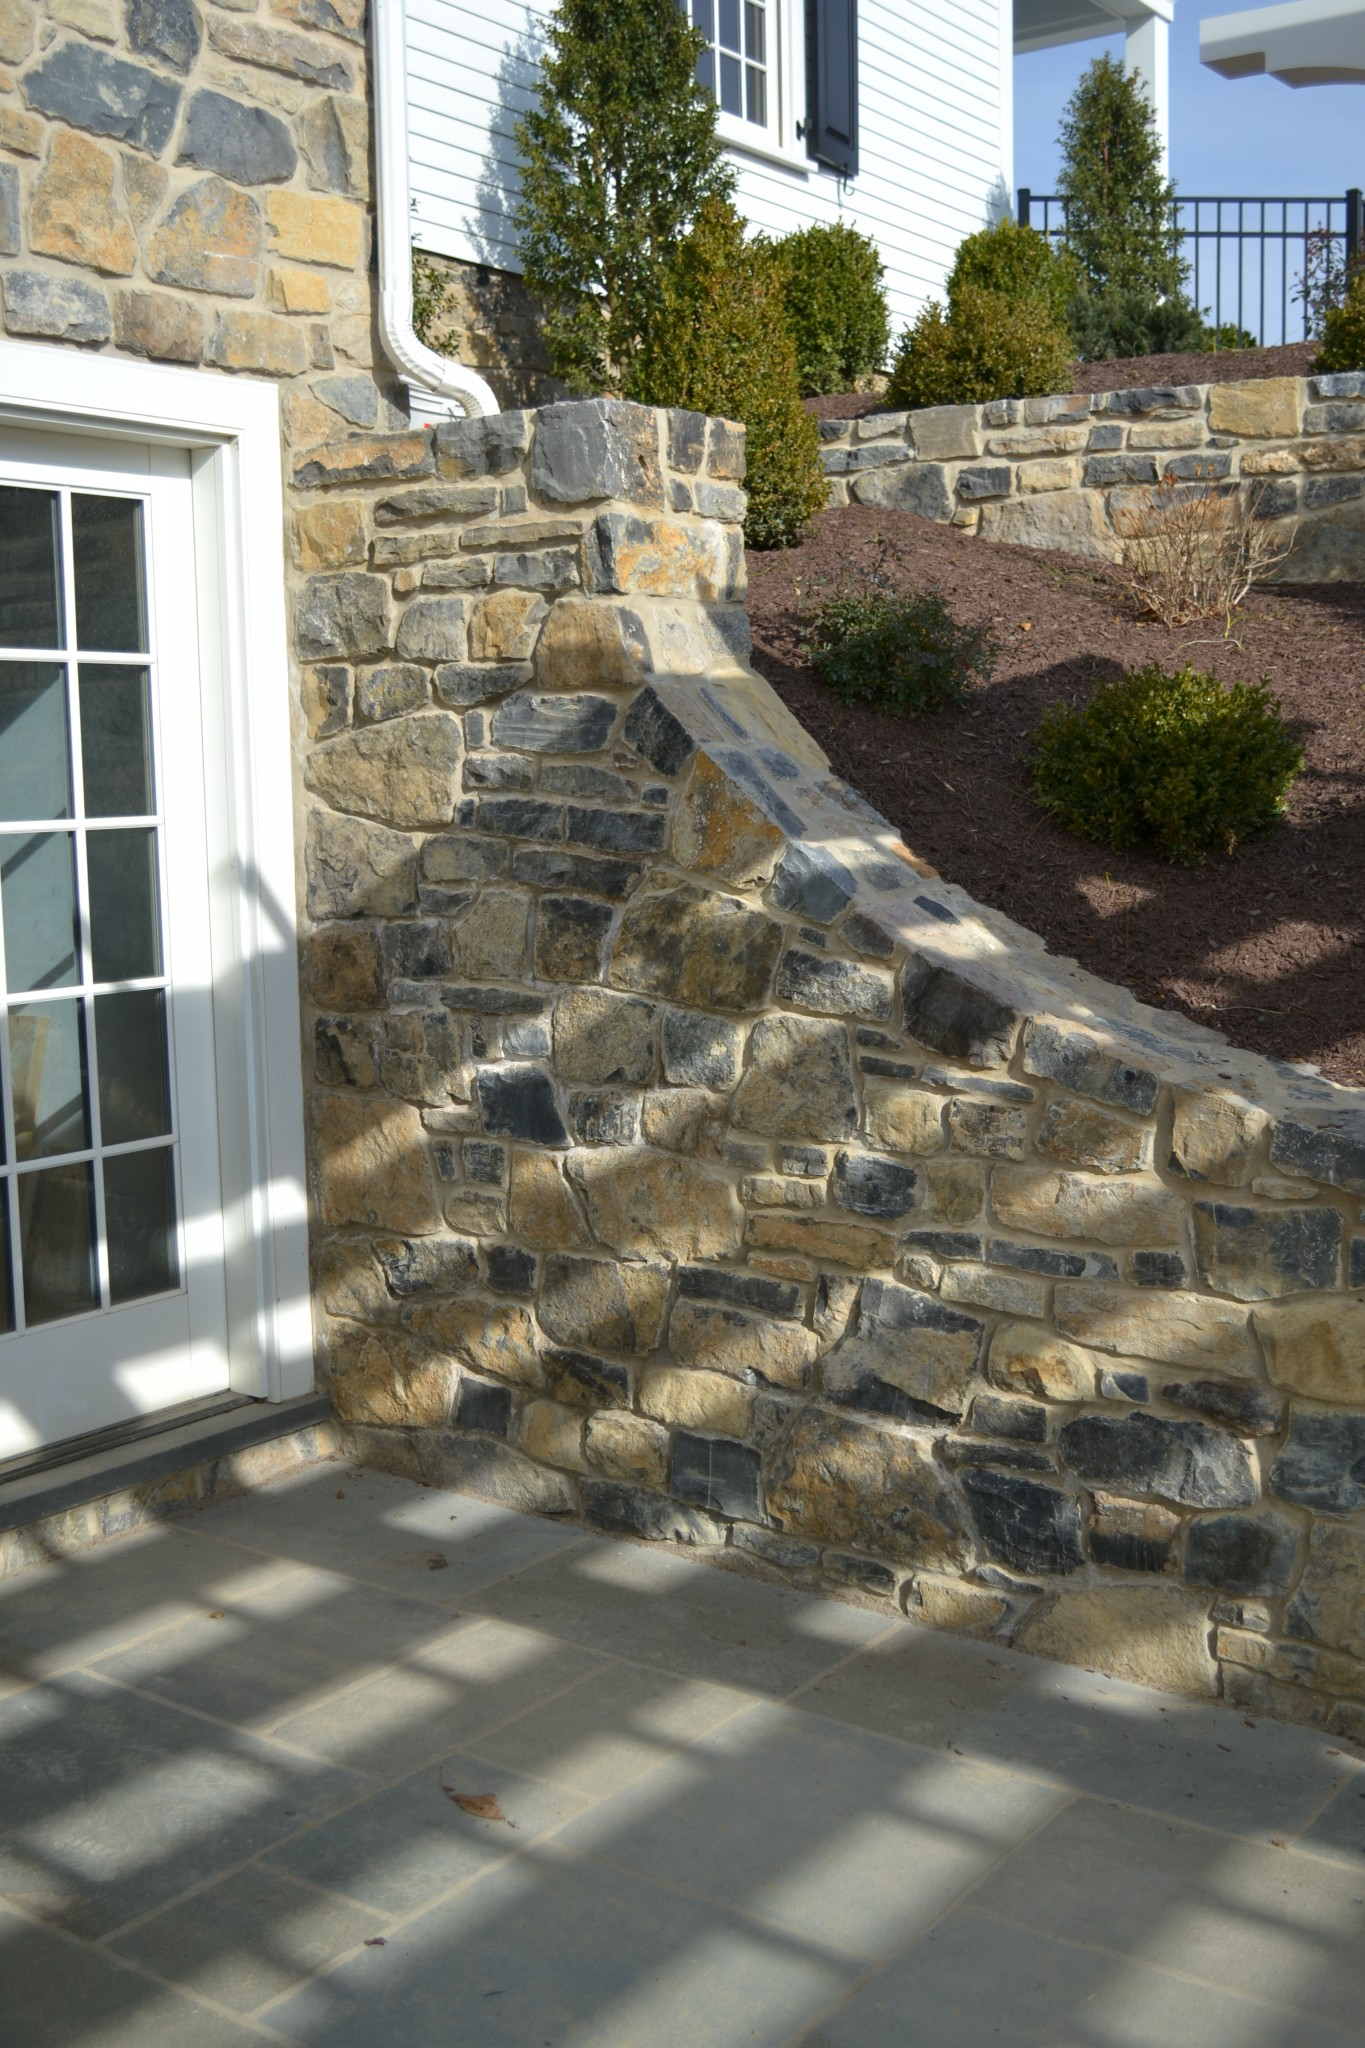 A limestone retaining wall at the Baylor House in Lewisburg, PA.